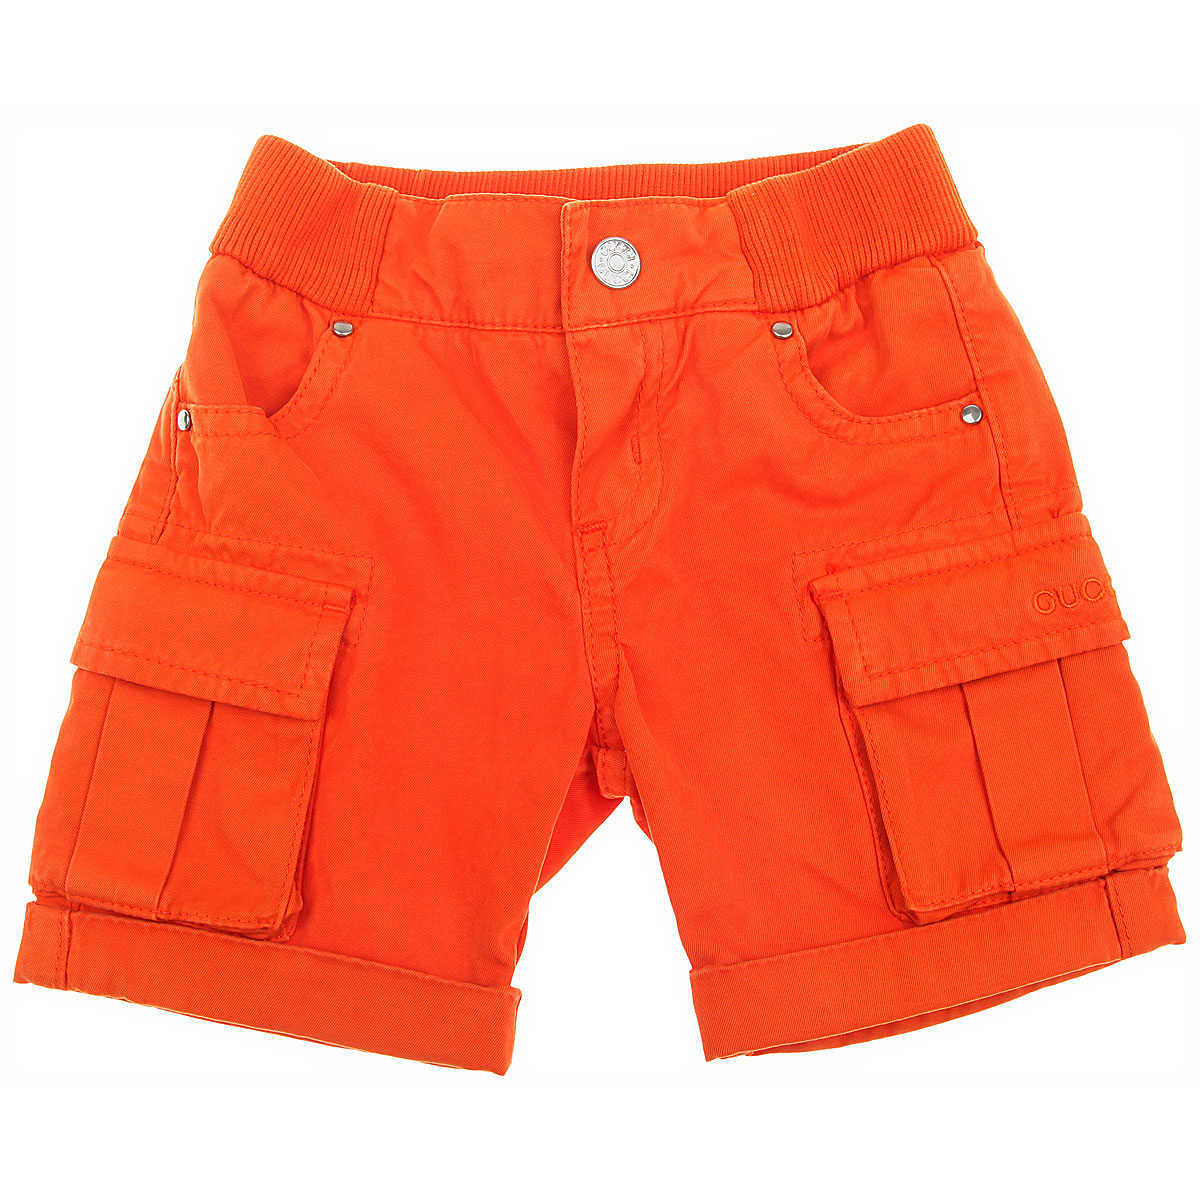 Gucci Baby Shorts for Boys On Sale in Outlet Orange UK - GOOFASH - Mens SHORTS